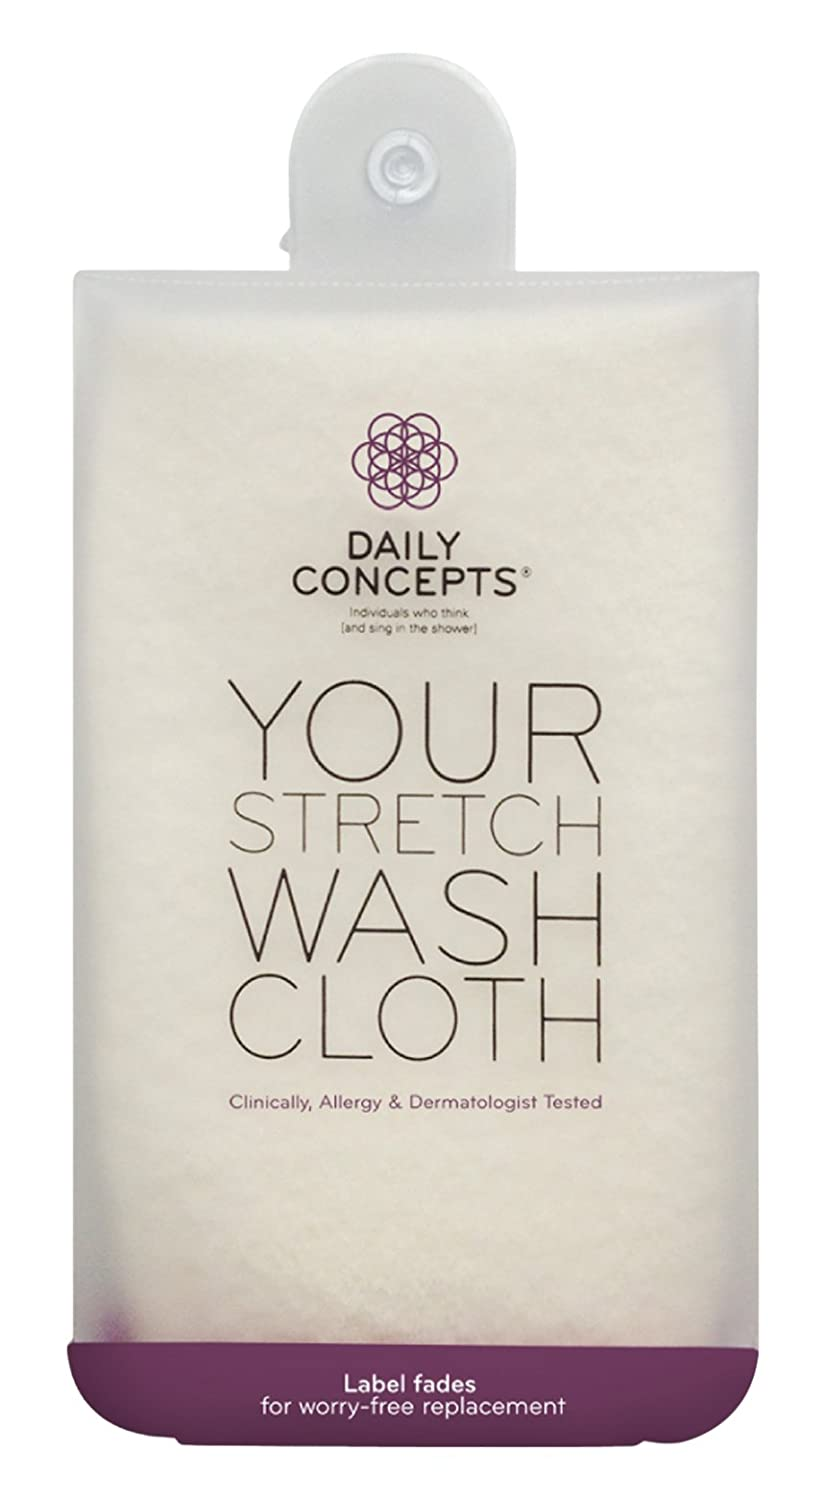 Daily Concepts Your stretch Wash Cloth DC3